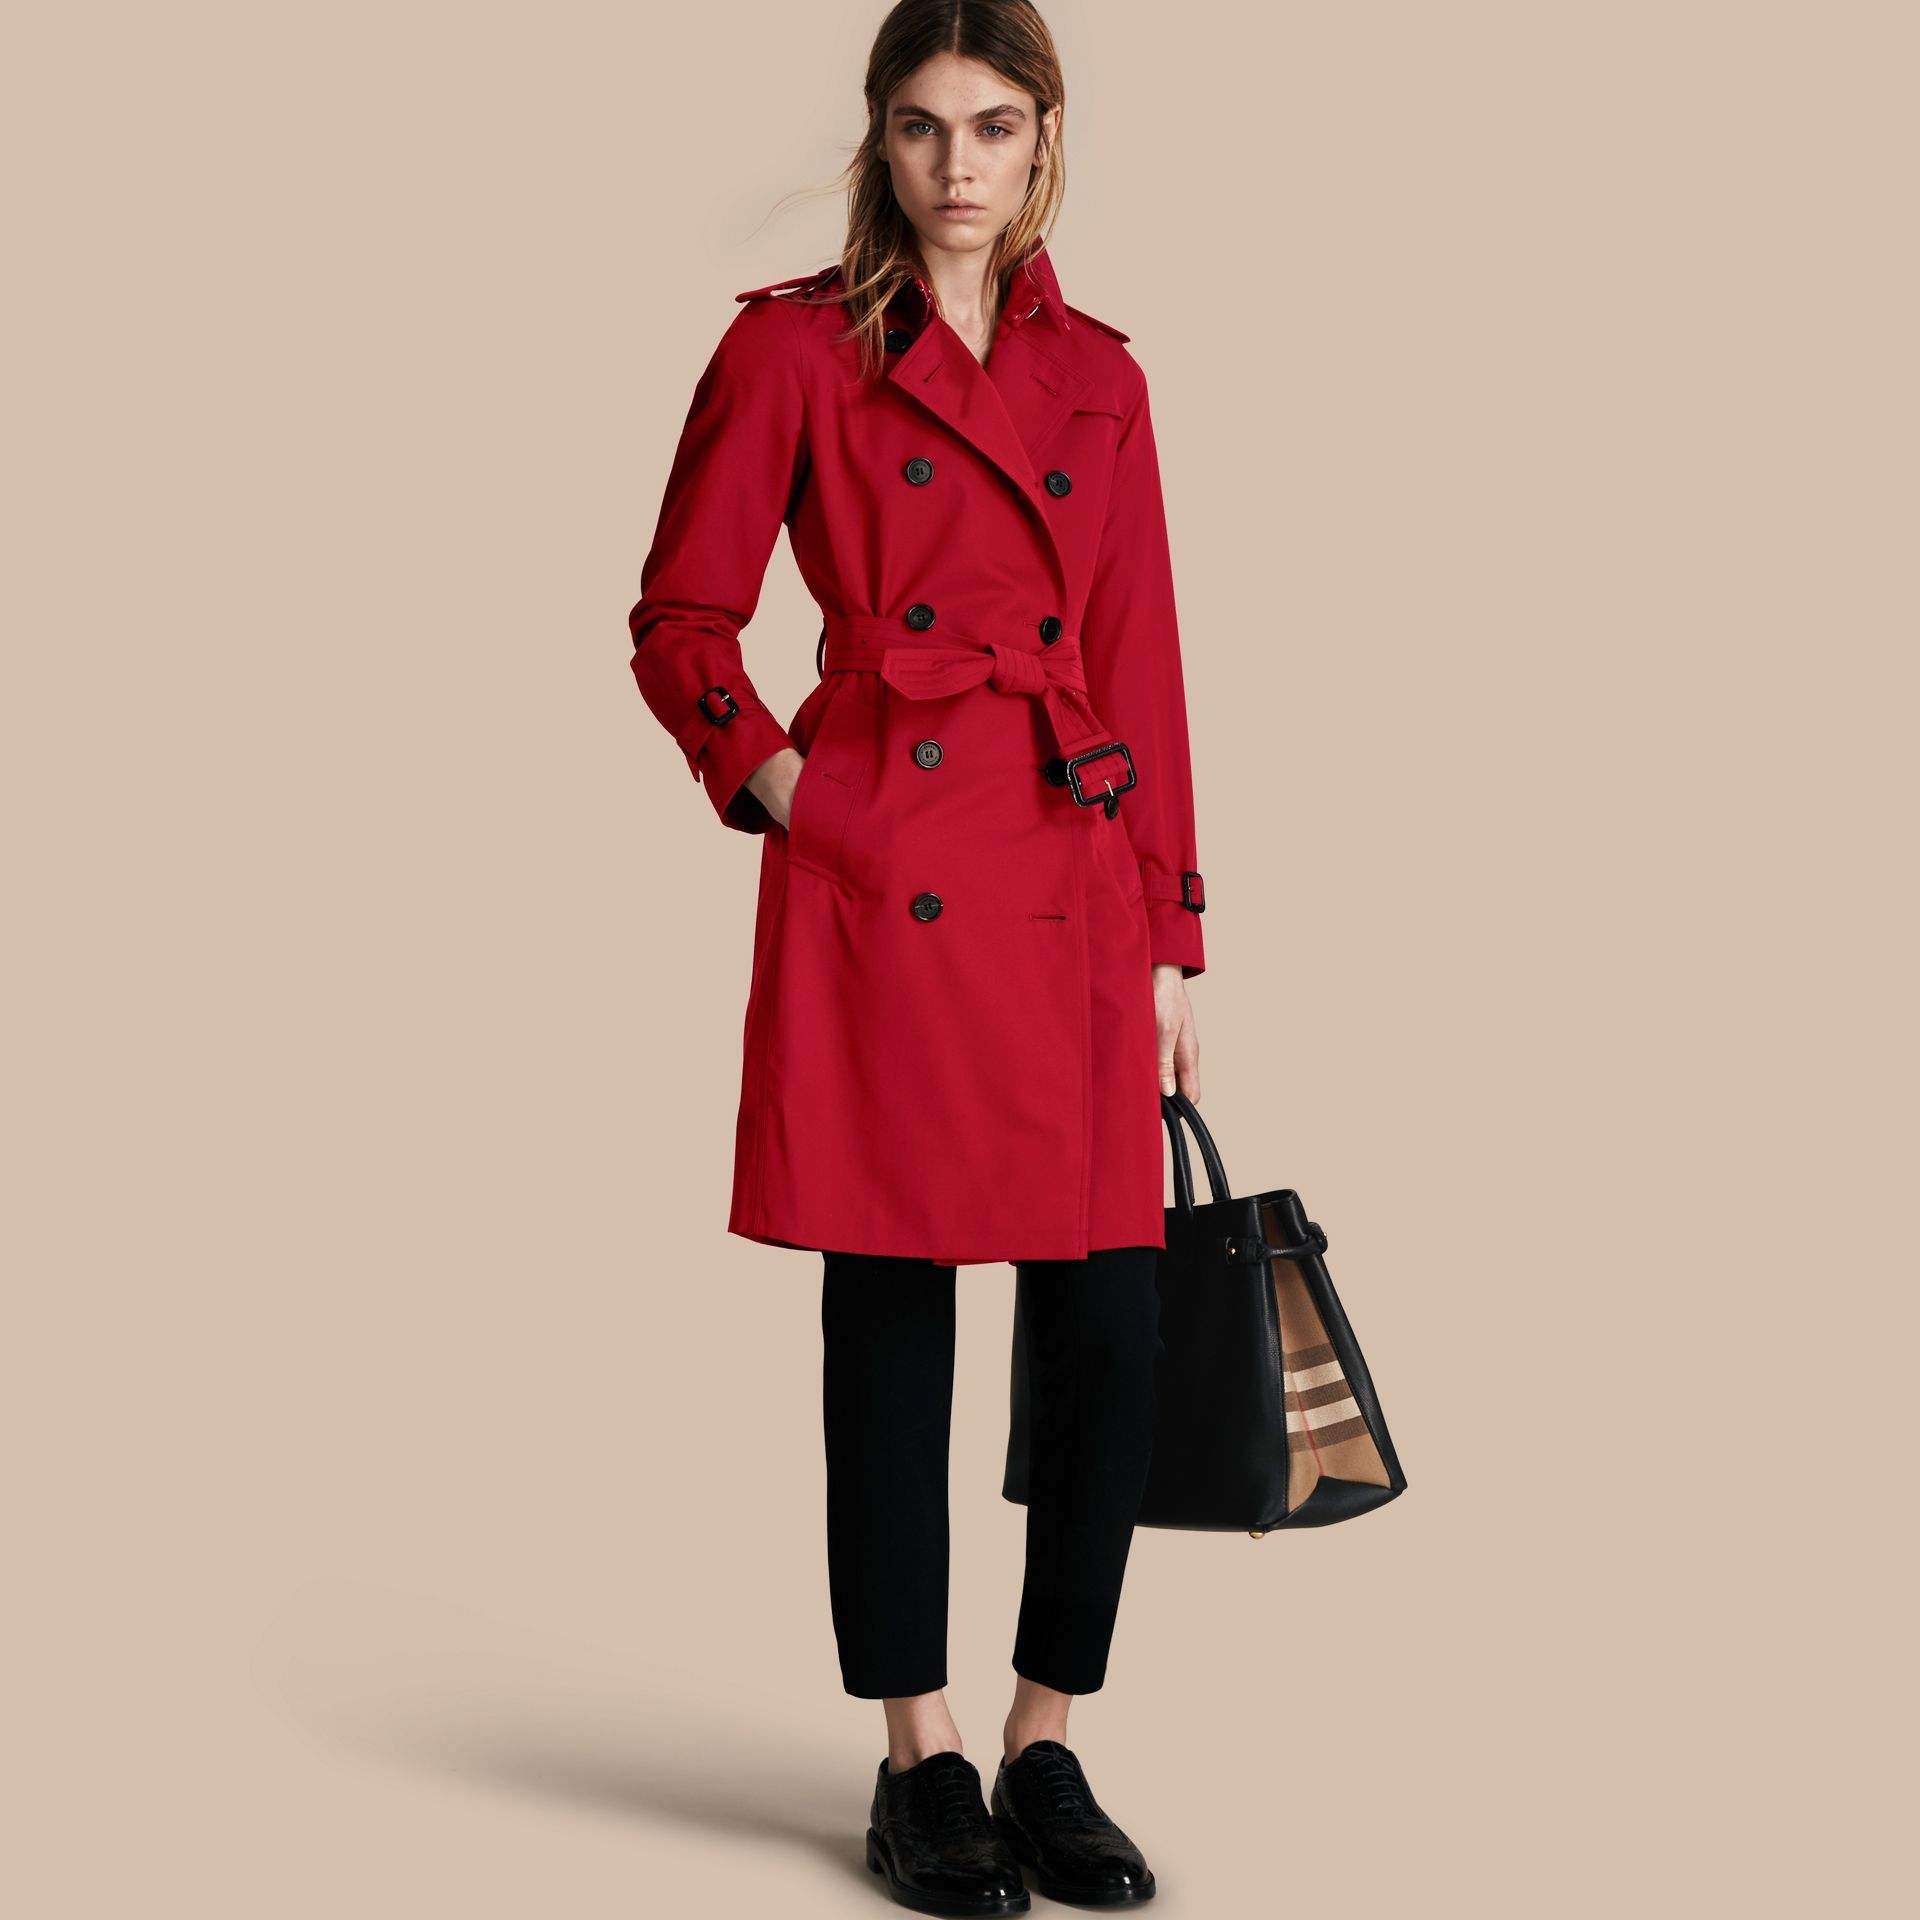 Parade red The Kensington - Trench coat Heritage longo Parade Red - galeria de imagens 1